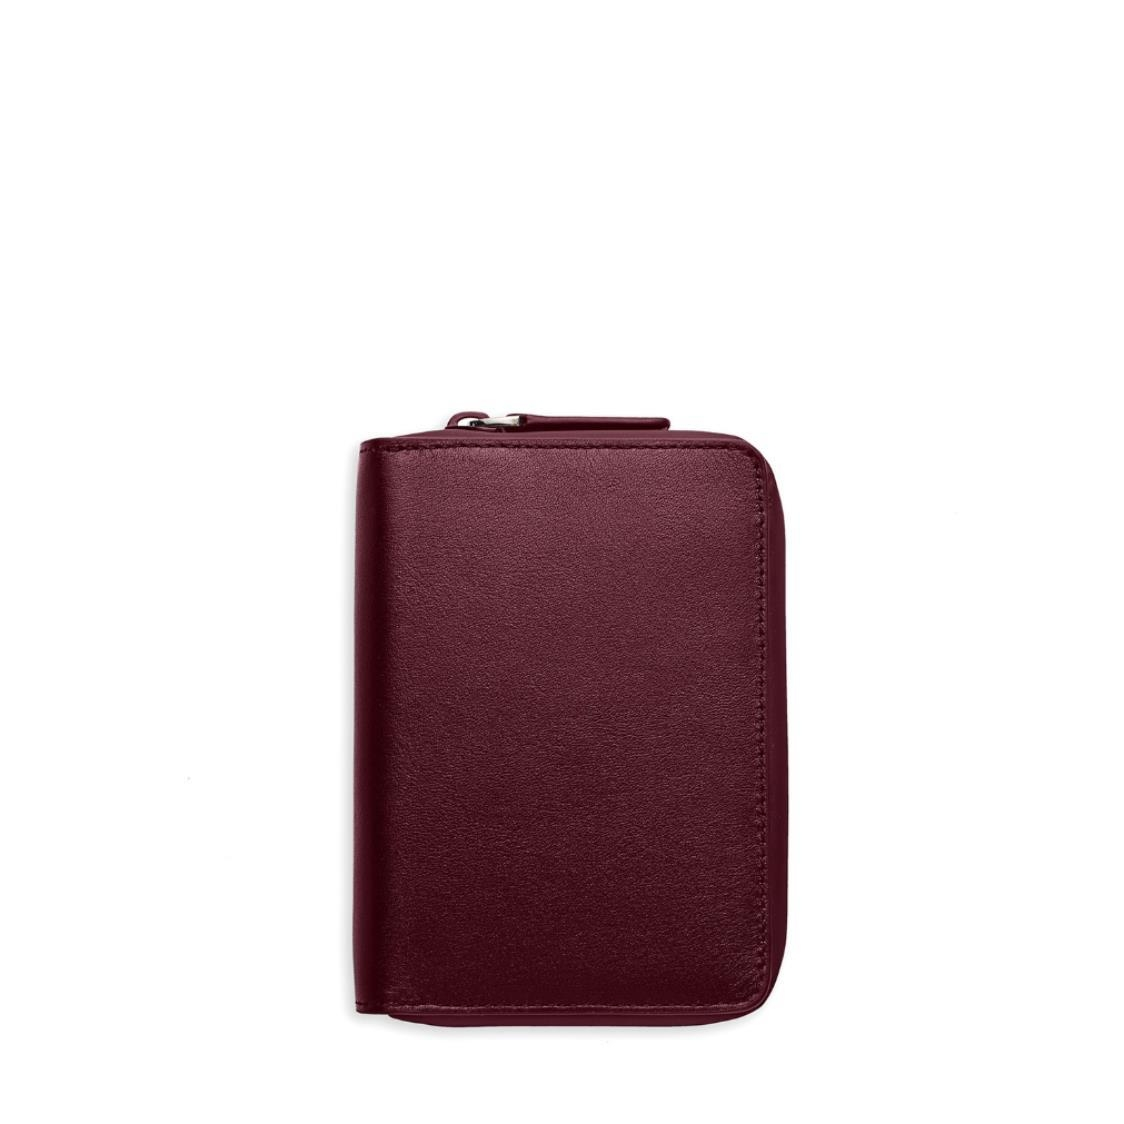 Ine Wallet - Burgundy Leather